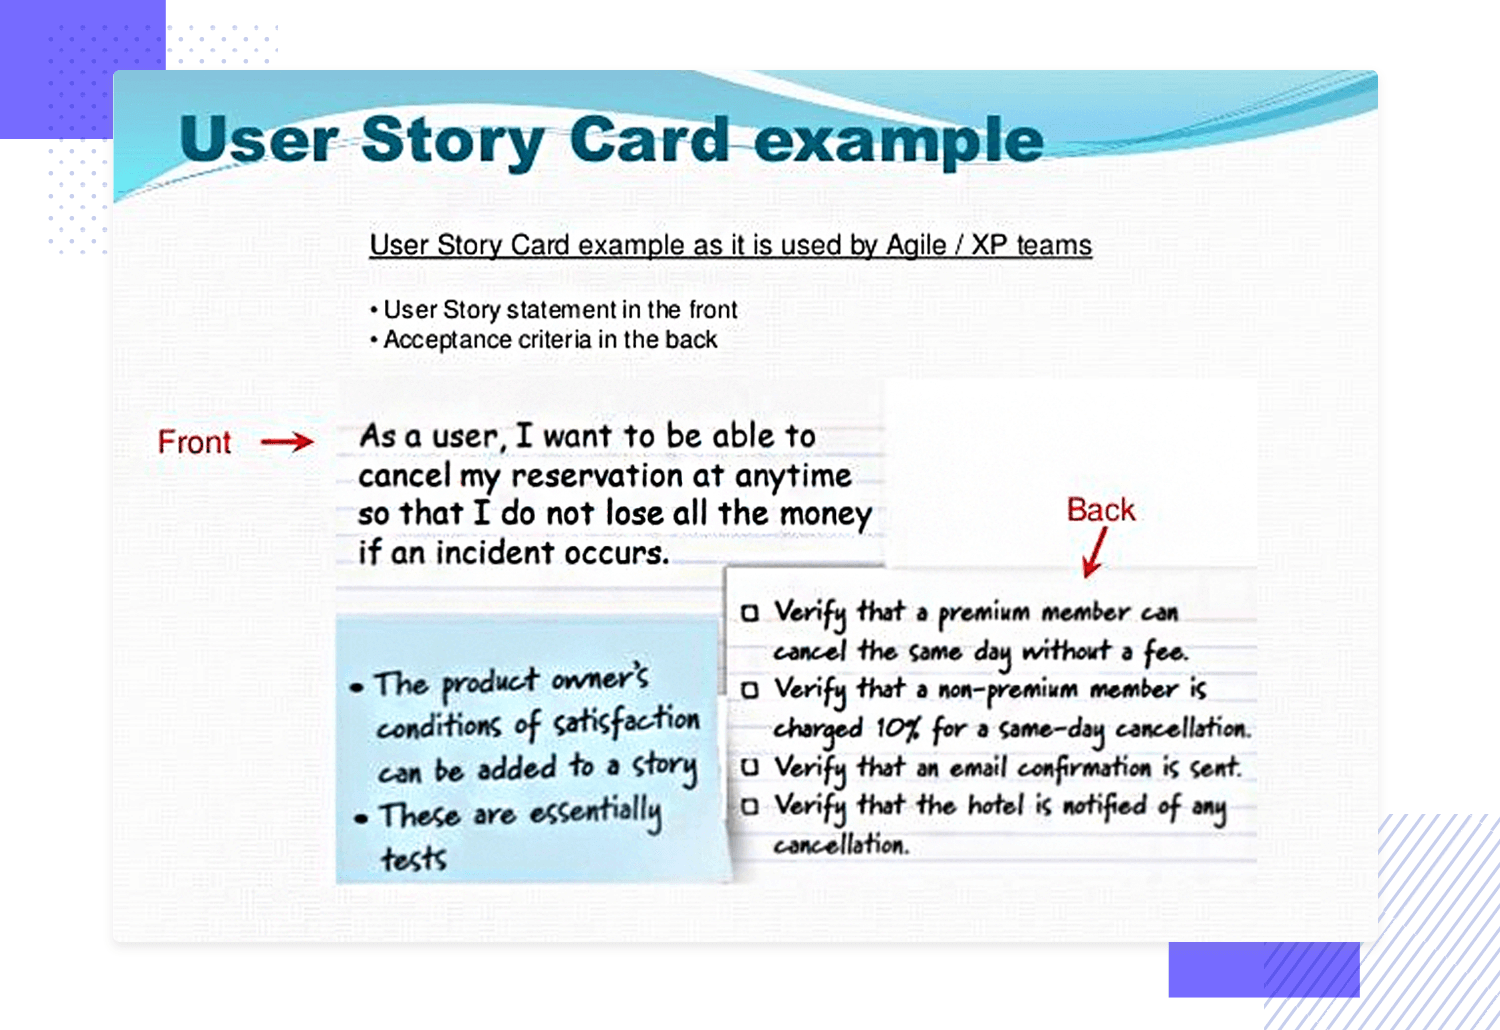 User story examples - front and back showing acceptance criteria